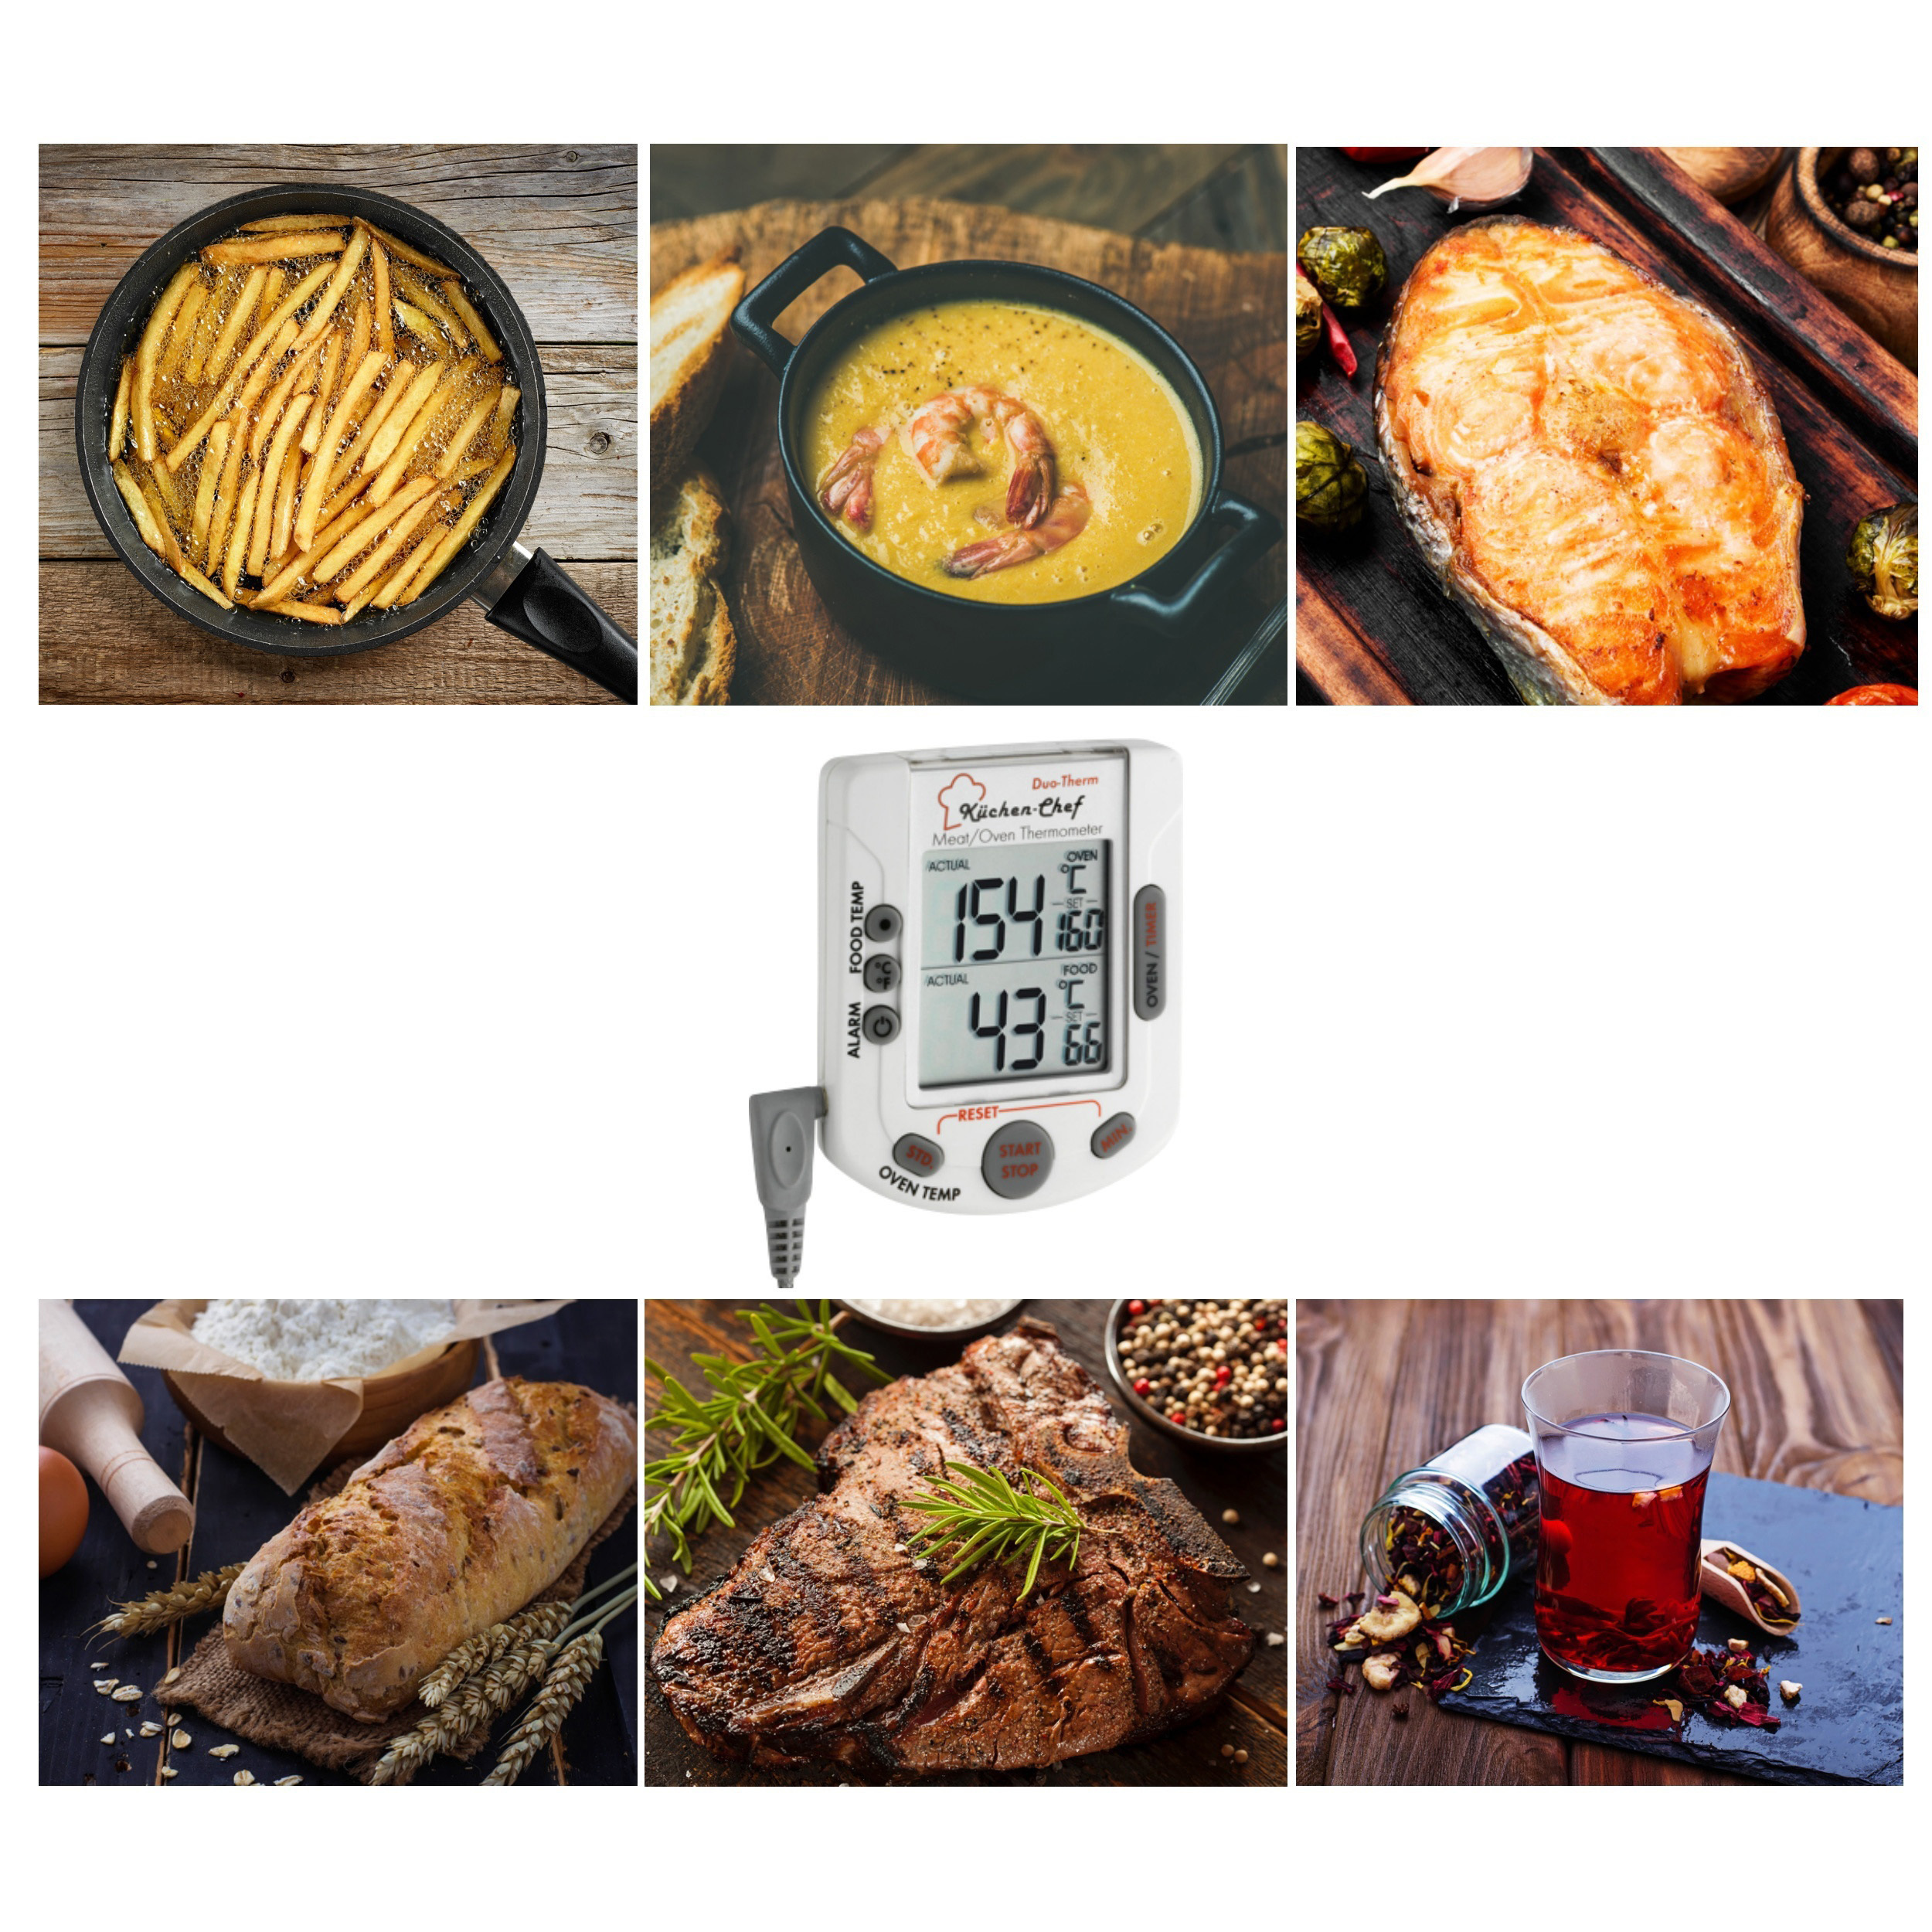 14-1503-digitales-grill-braten-ofenthermometer-küchen-chef-duo-therm-anwendung-1200x1200px.jpg